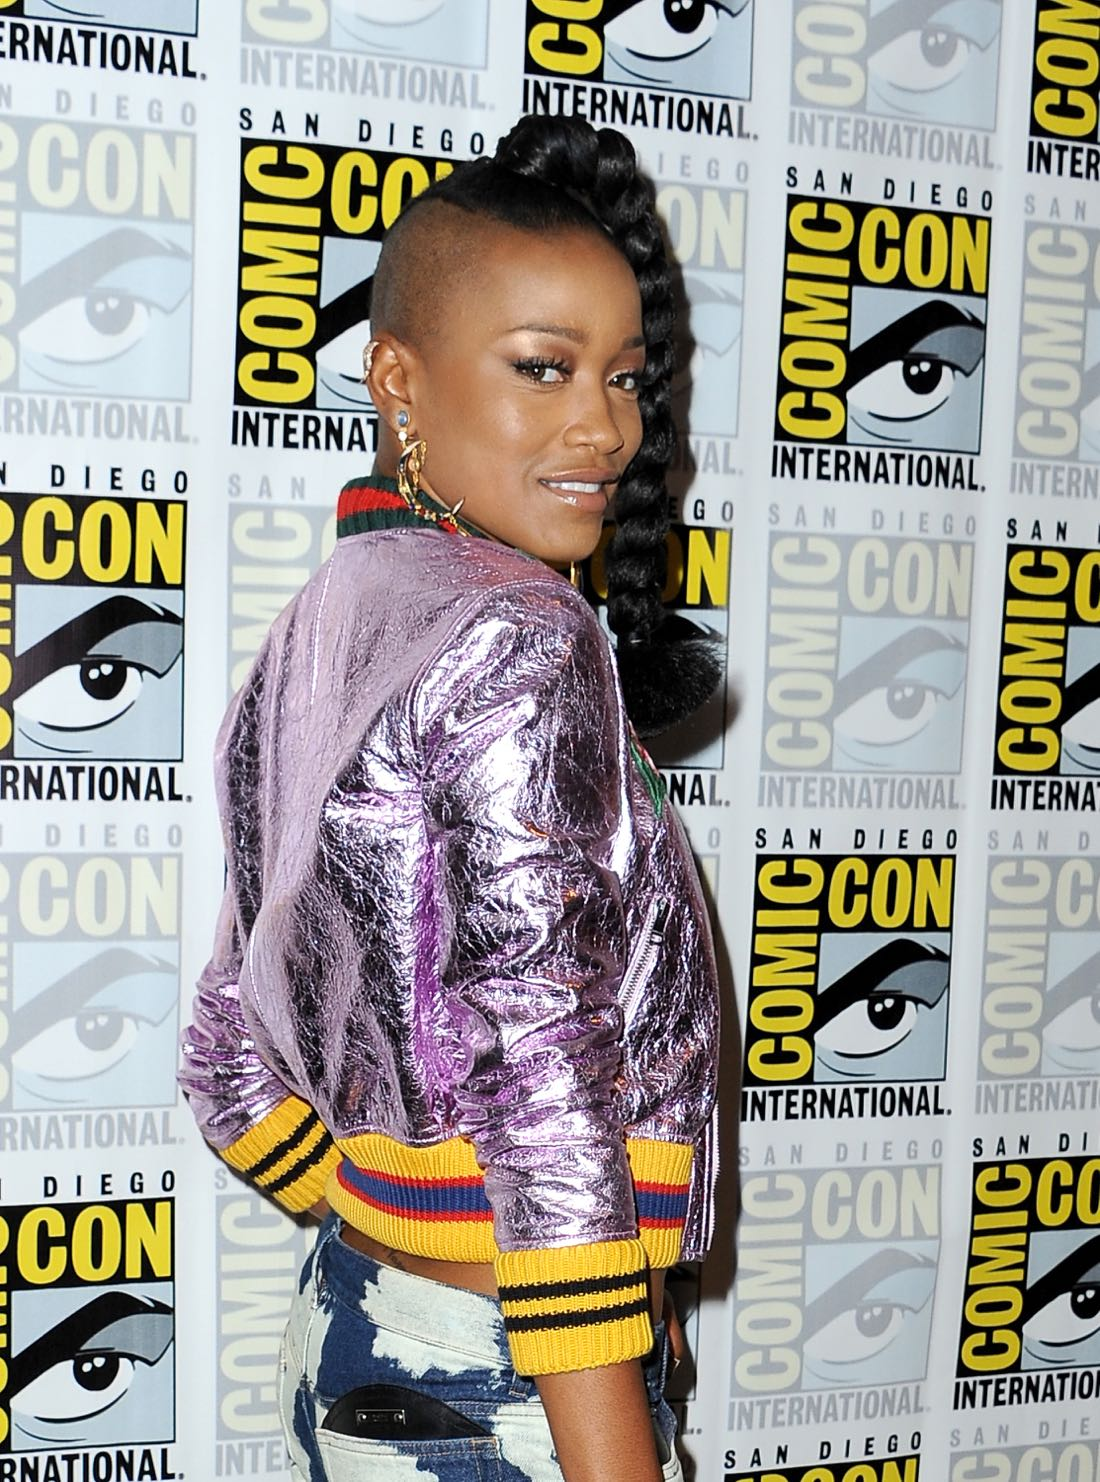 FOX FANFARE AT SAN DIEGO COMIC-CON © 2016: SCREAM QUEENS cast member Keke Palmer during the SCREAM QUEENS press room on Friday, July 22 at the FOX FANFARE AT SAN DIEGO COMIC-CON © 2016. CR: Scott Krikland/FX © 2016 FOX BROADCASTING